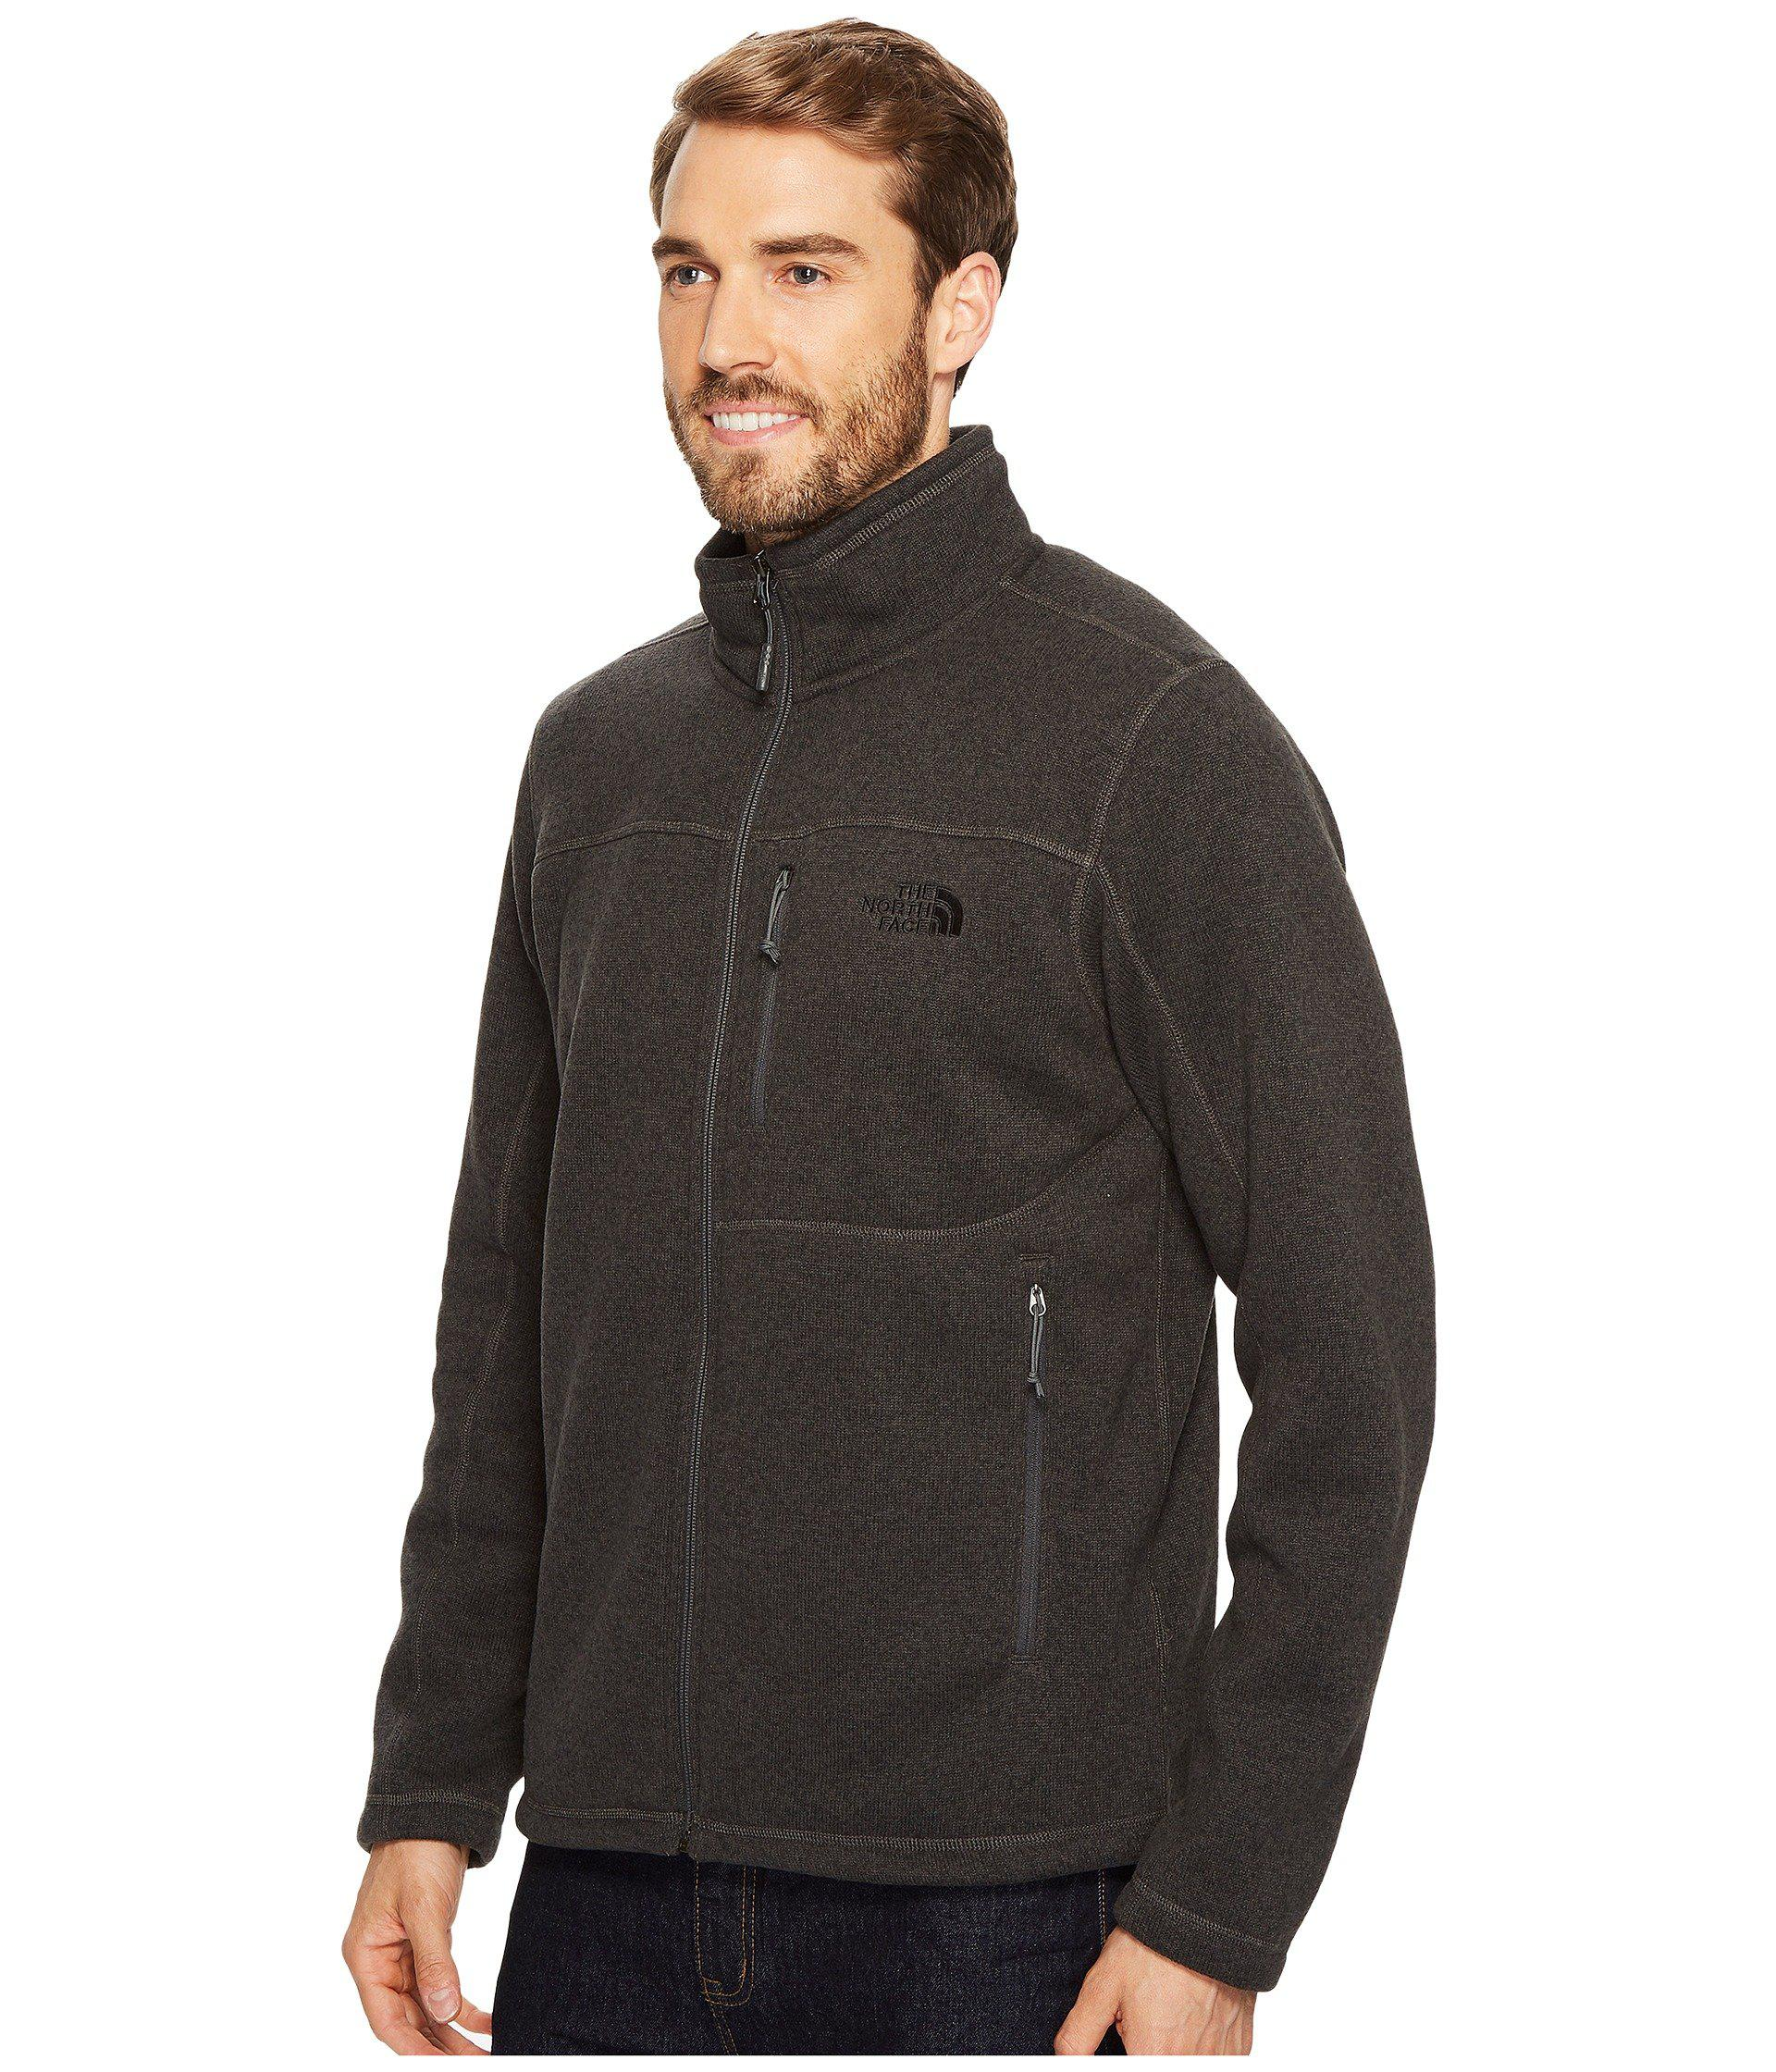 67121a3d1a09 Lyst - The North Face Gordon Lyons Full Zip (tnf Black Heather 1) Men s  Jacket in Gray for Men